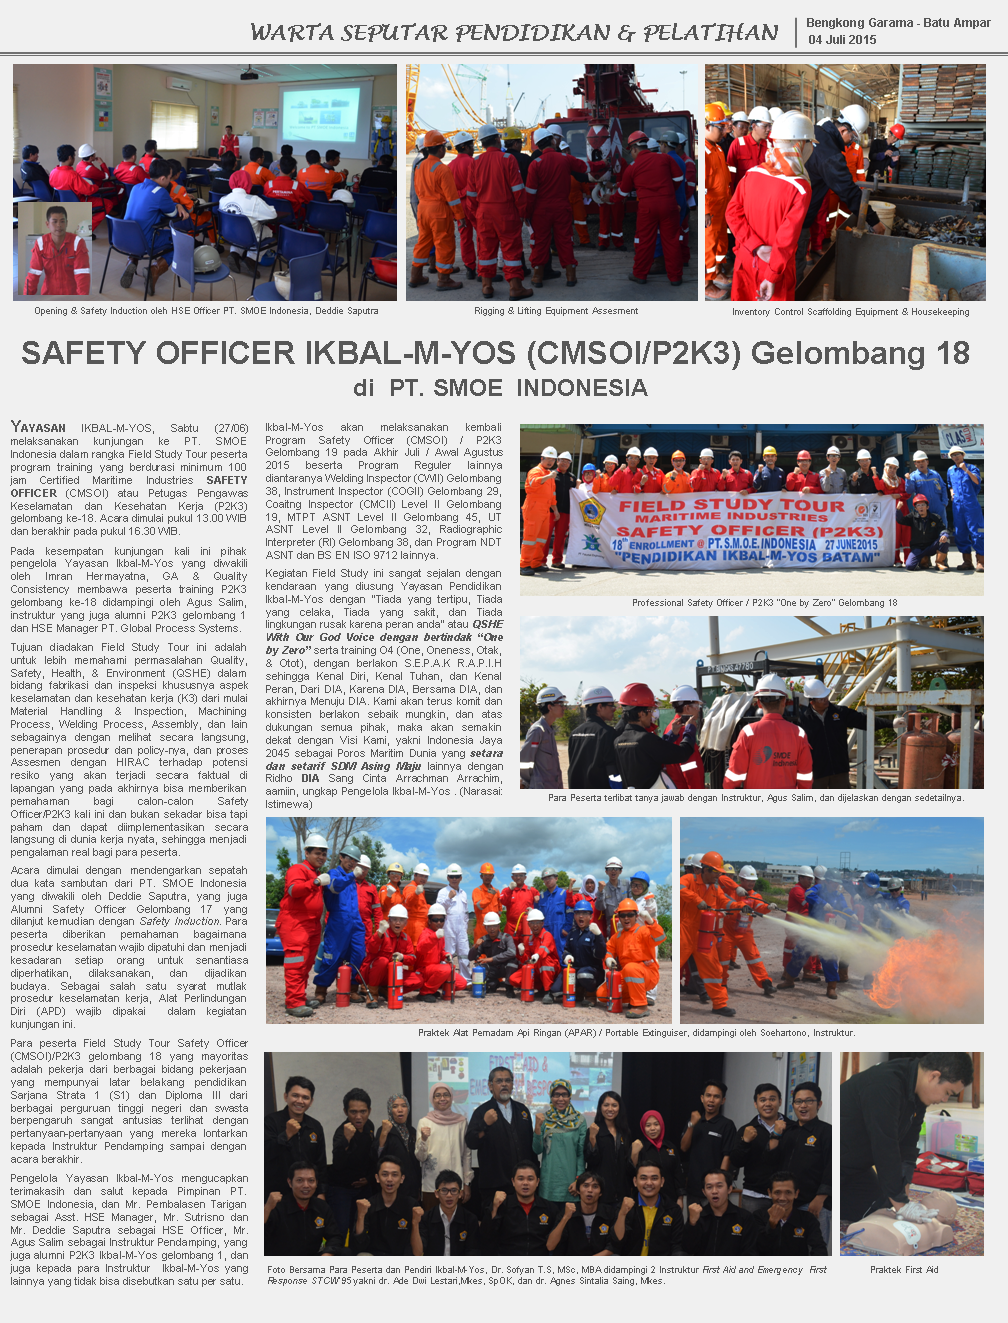 Study Tour Safety Officer Gel.18 di PT. SMOE